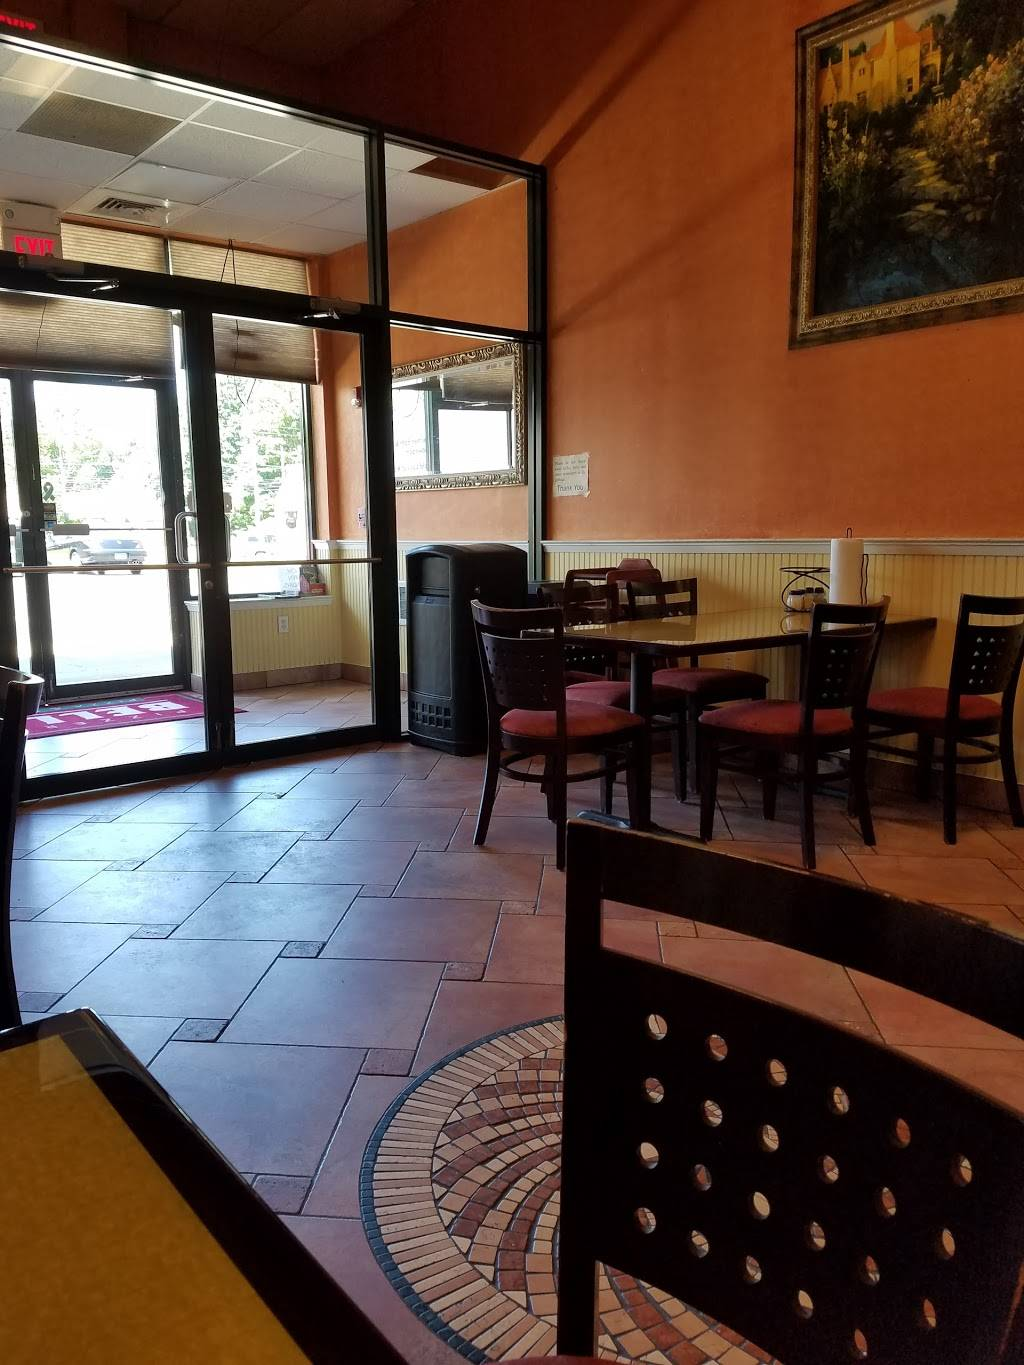 Pizzeria Bello | restaurant | 317 Federal Rd, Brookfield, CT 06804, USA | 2037404400 OR +1 203-740-4400